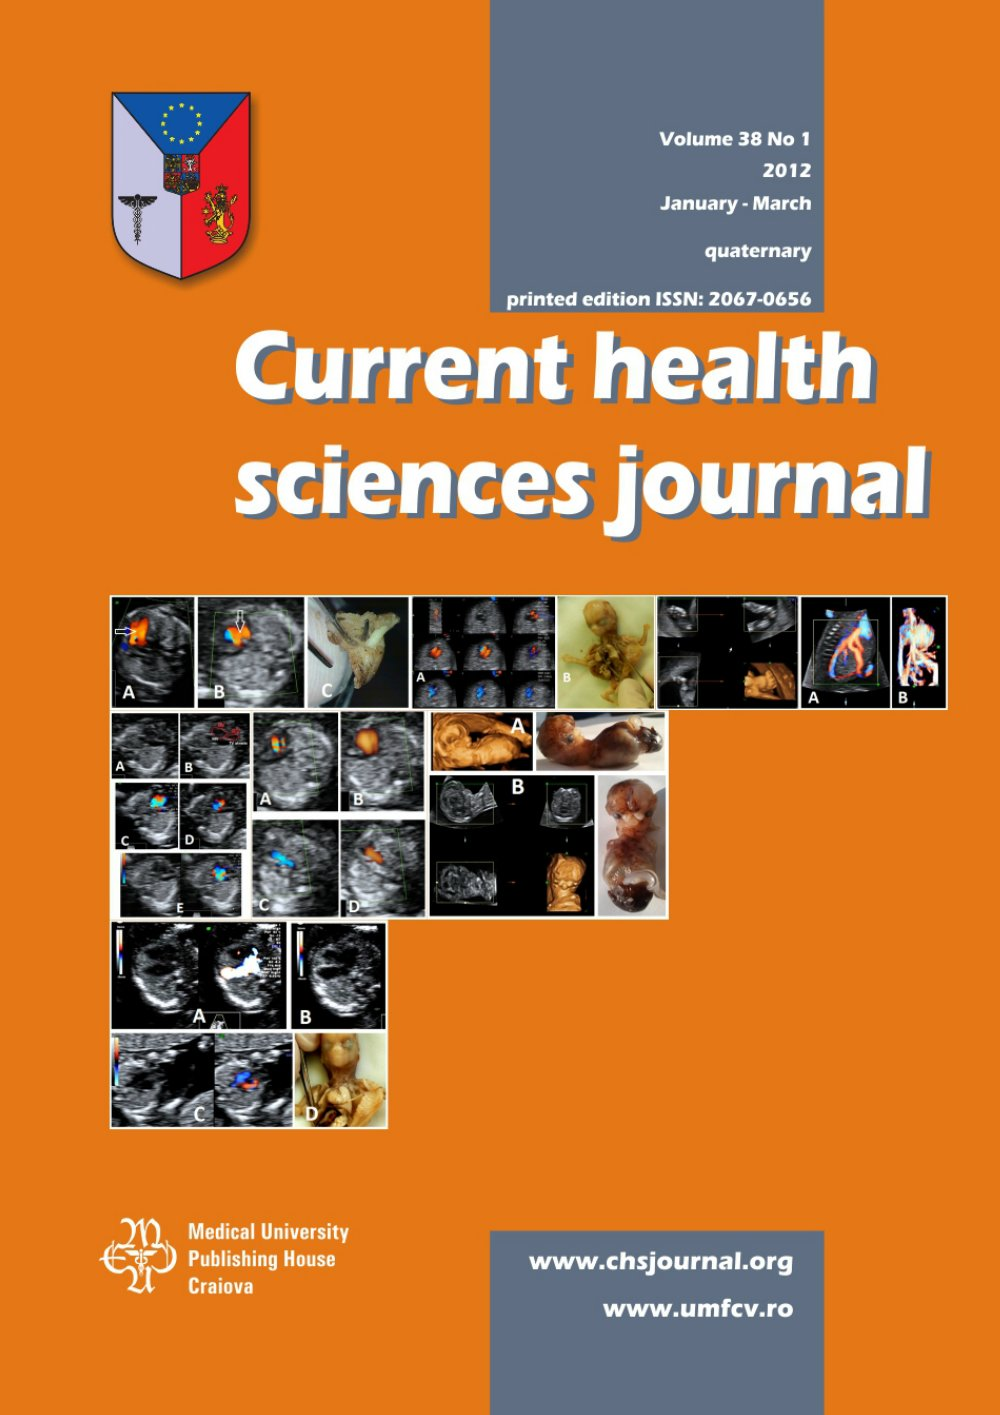 Current Health Sciences Journal, vol. 38 no. 1, 2012